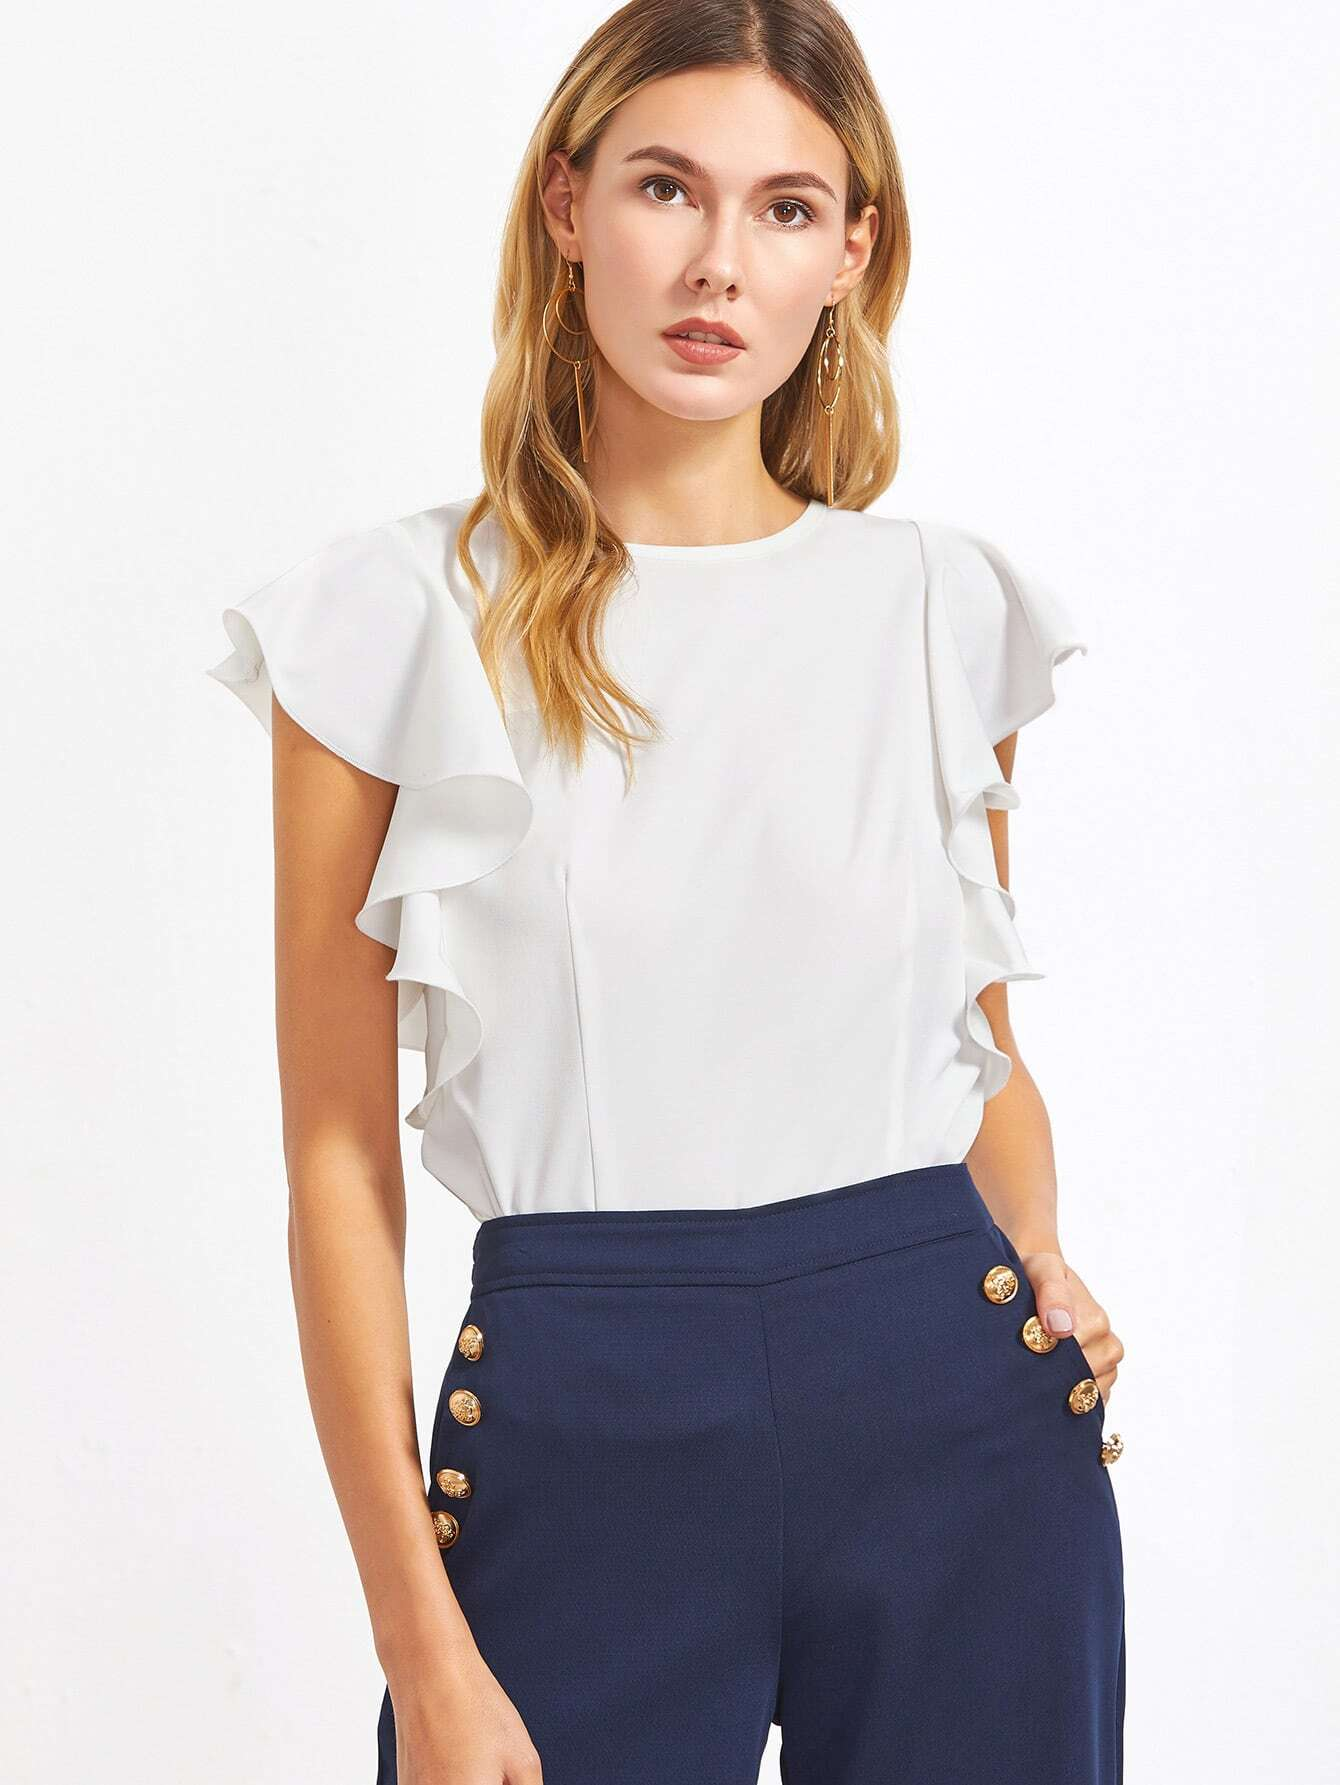 http://www.shein.com/White-Ruffle-Sleeve-Top-p-333031-cat-1733.html?aff_id=8630